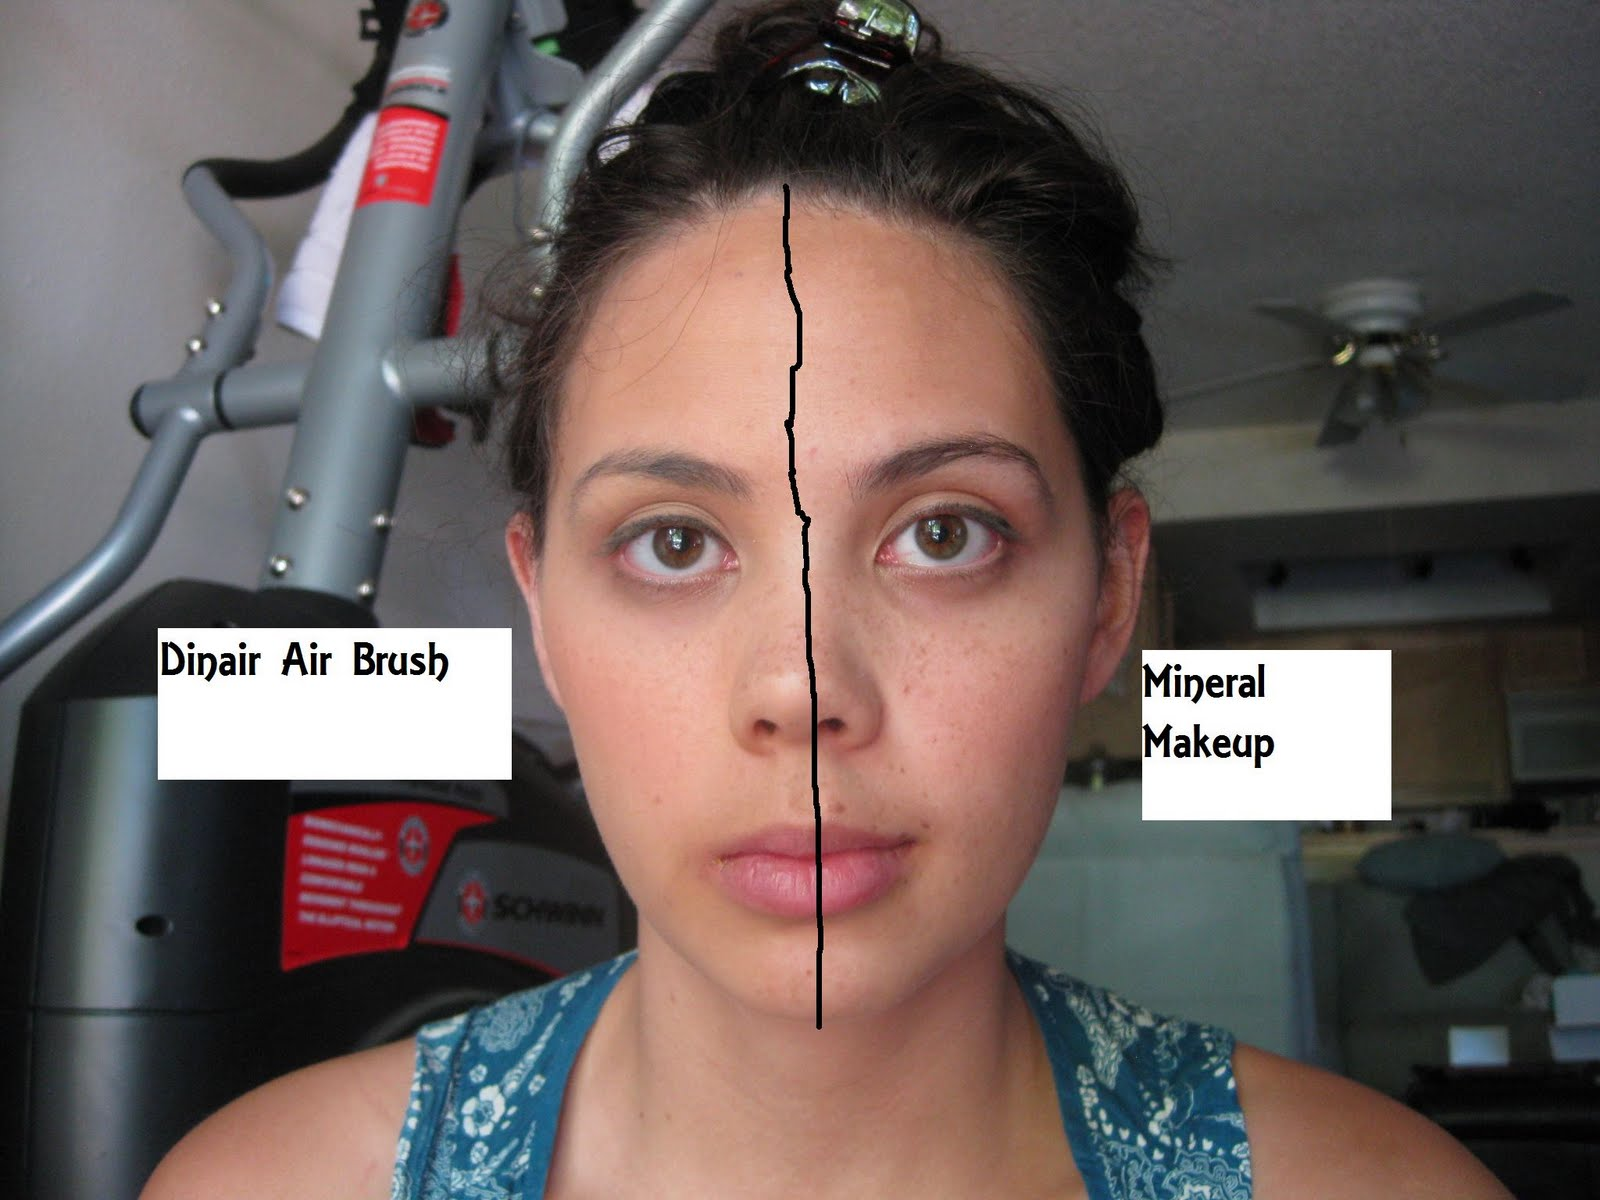 Air brush makeup